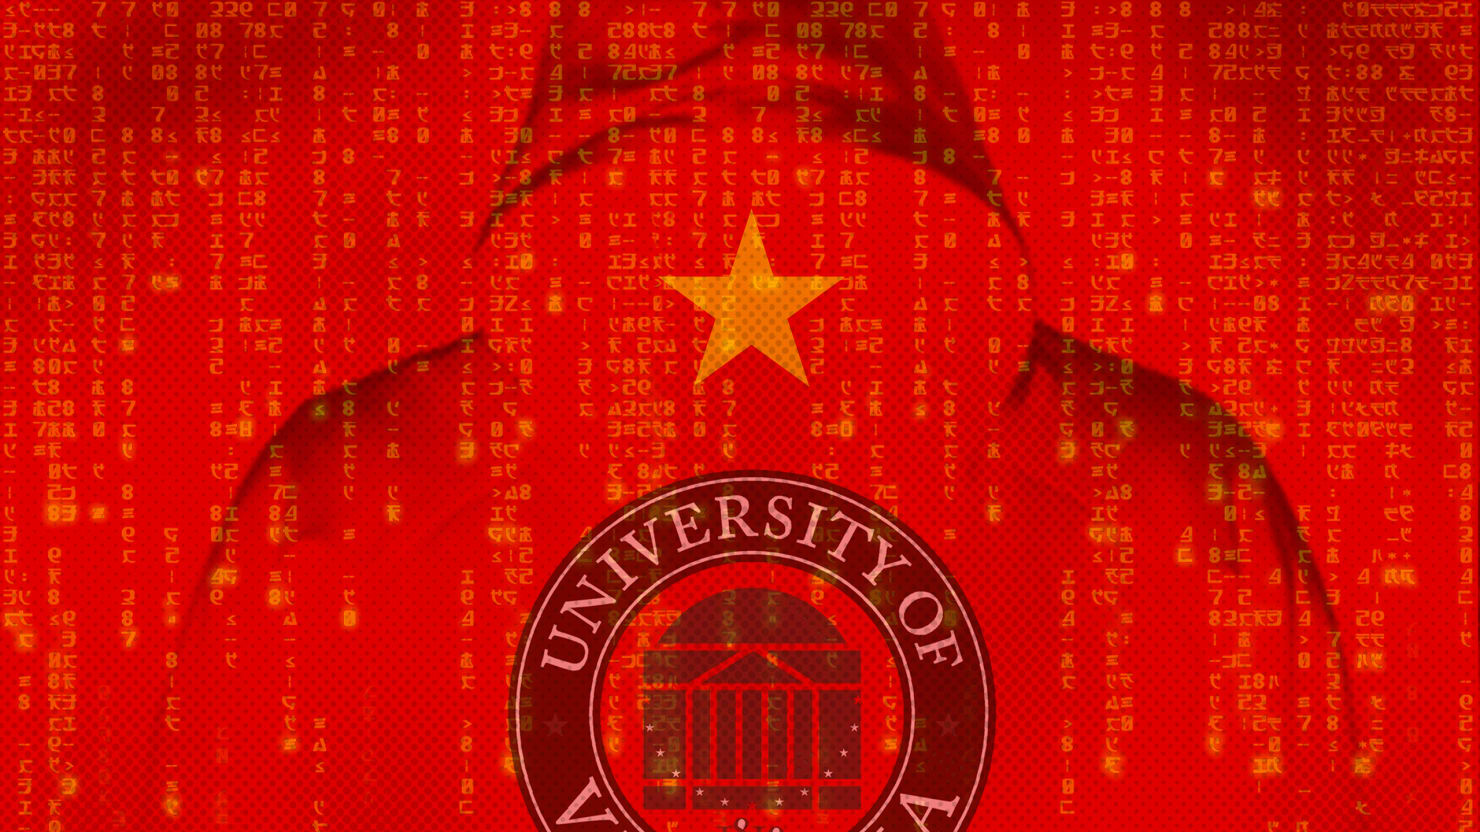 Chinese Hackers Target U.S. University With Government Ties